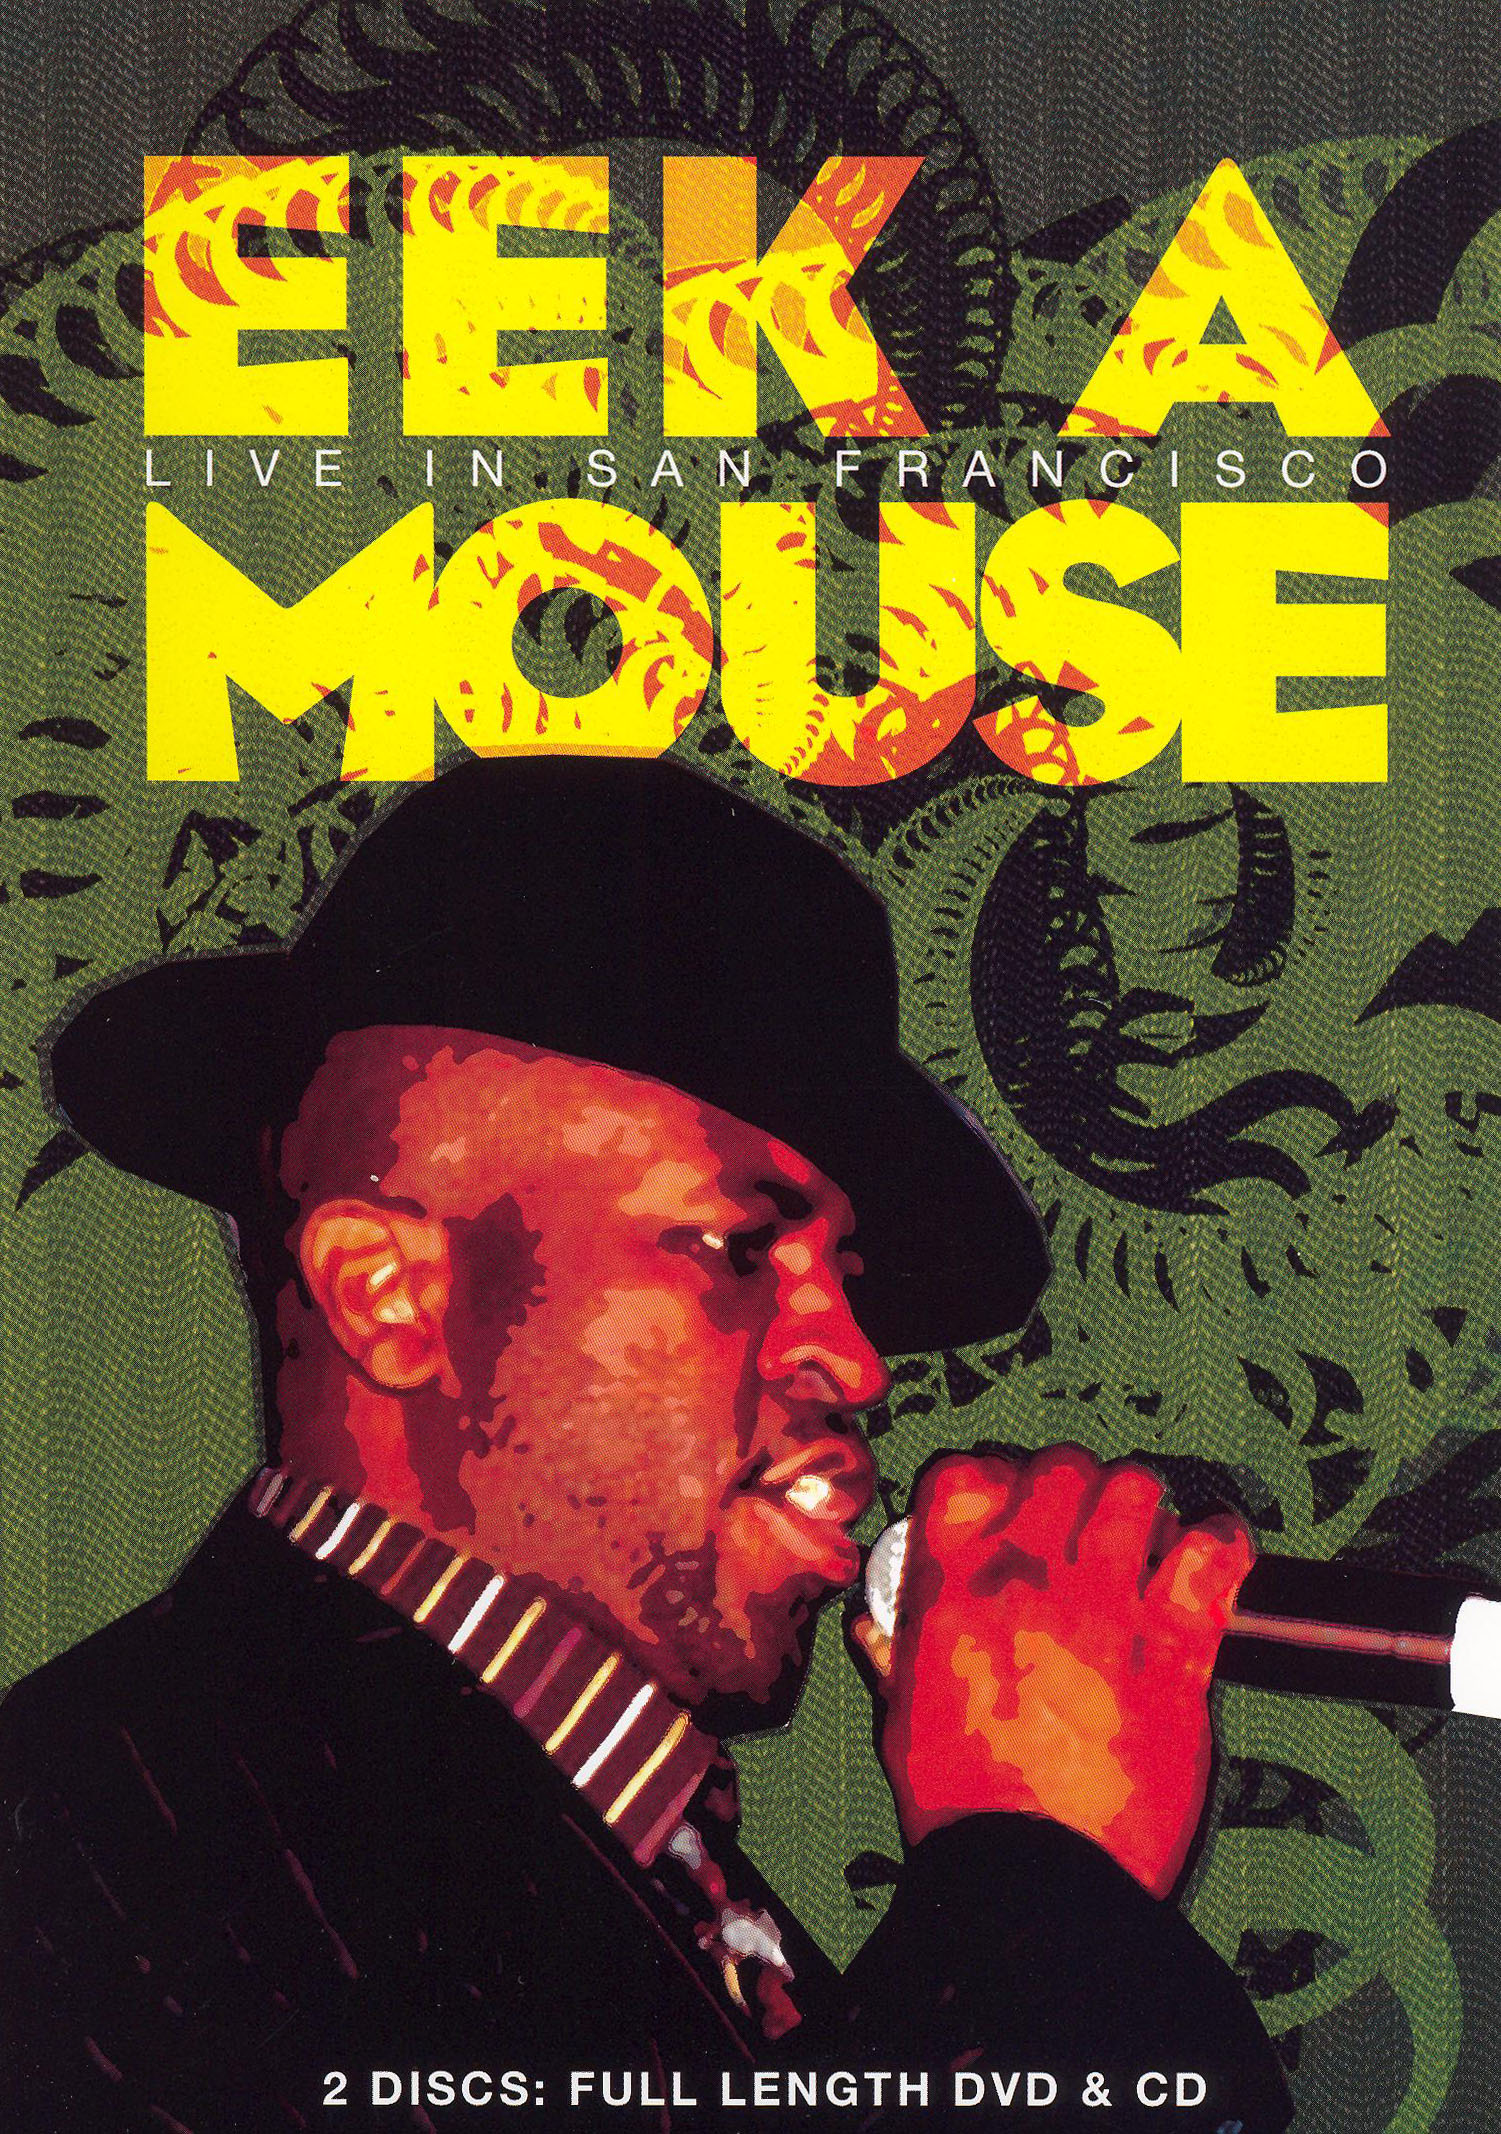 Eek-A-Mouse: Live in San Francisco